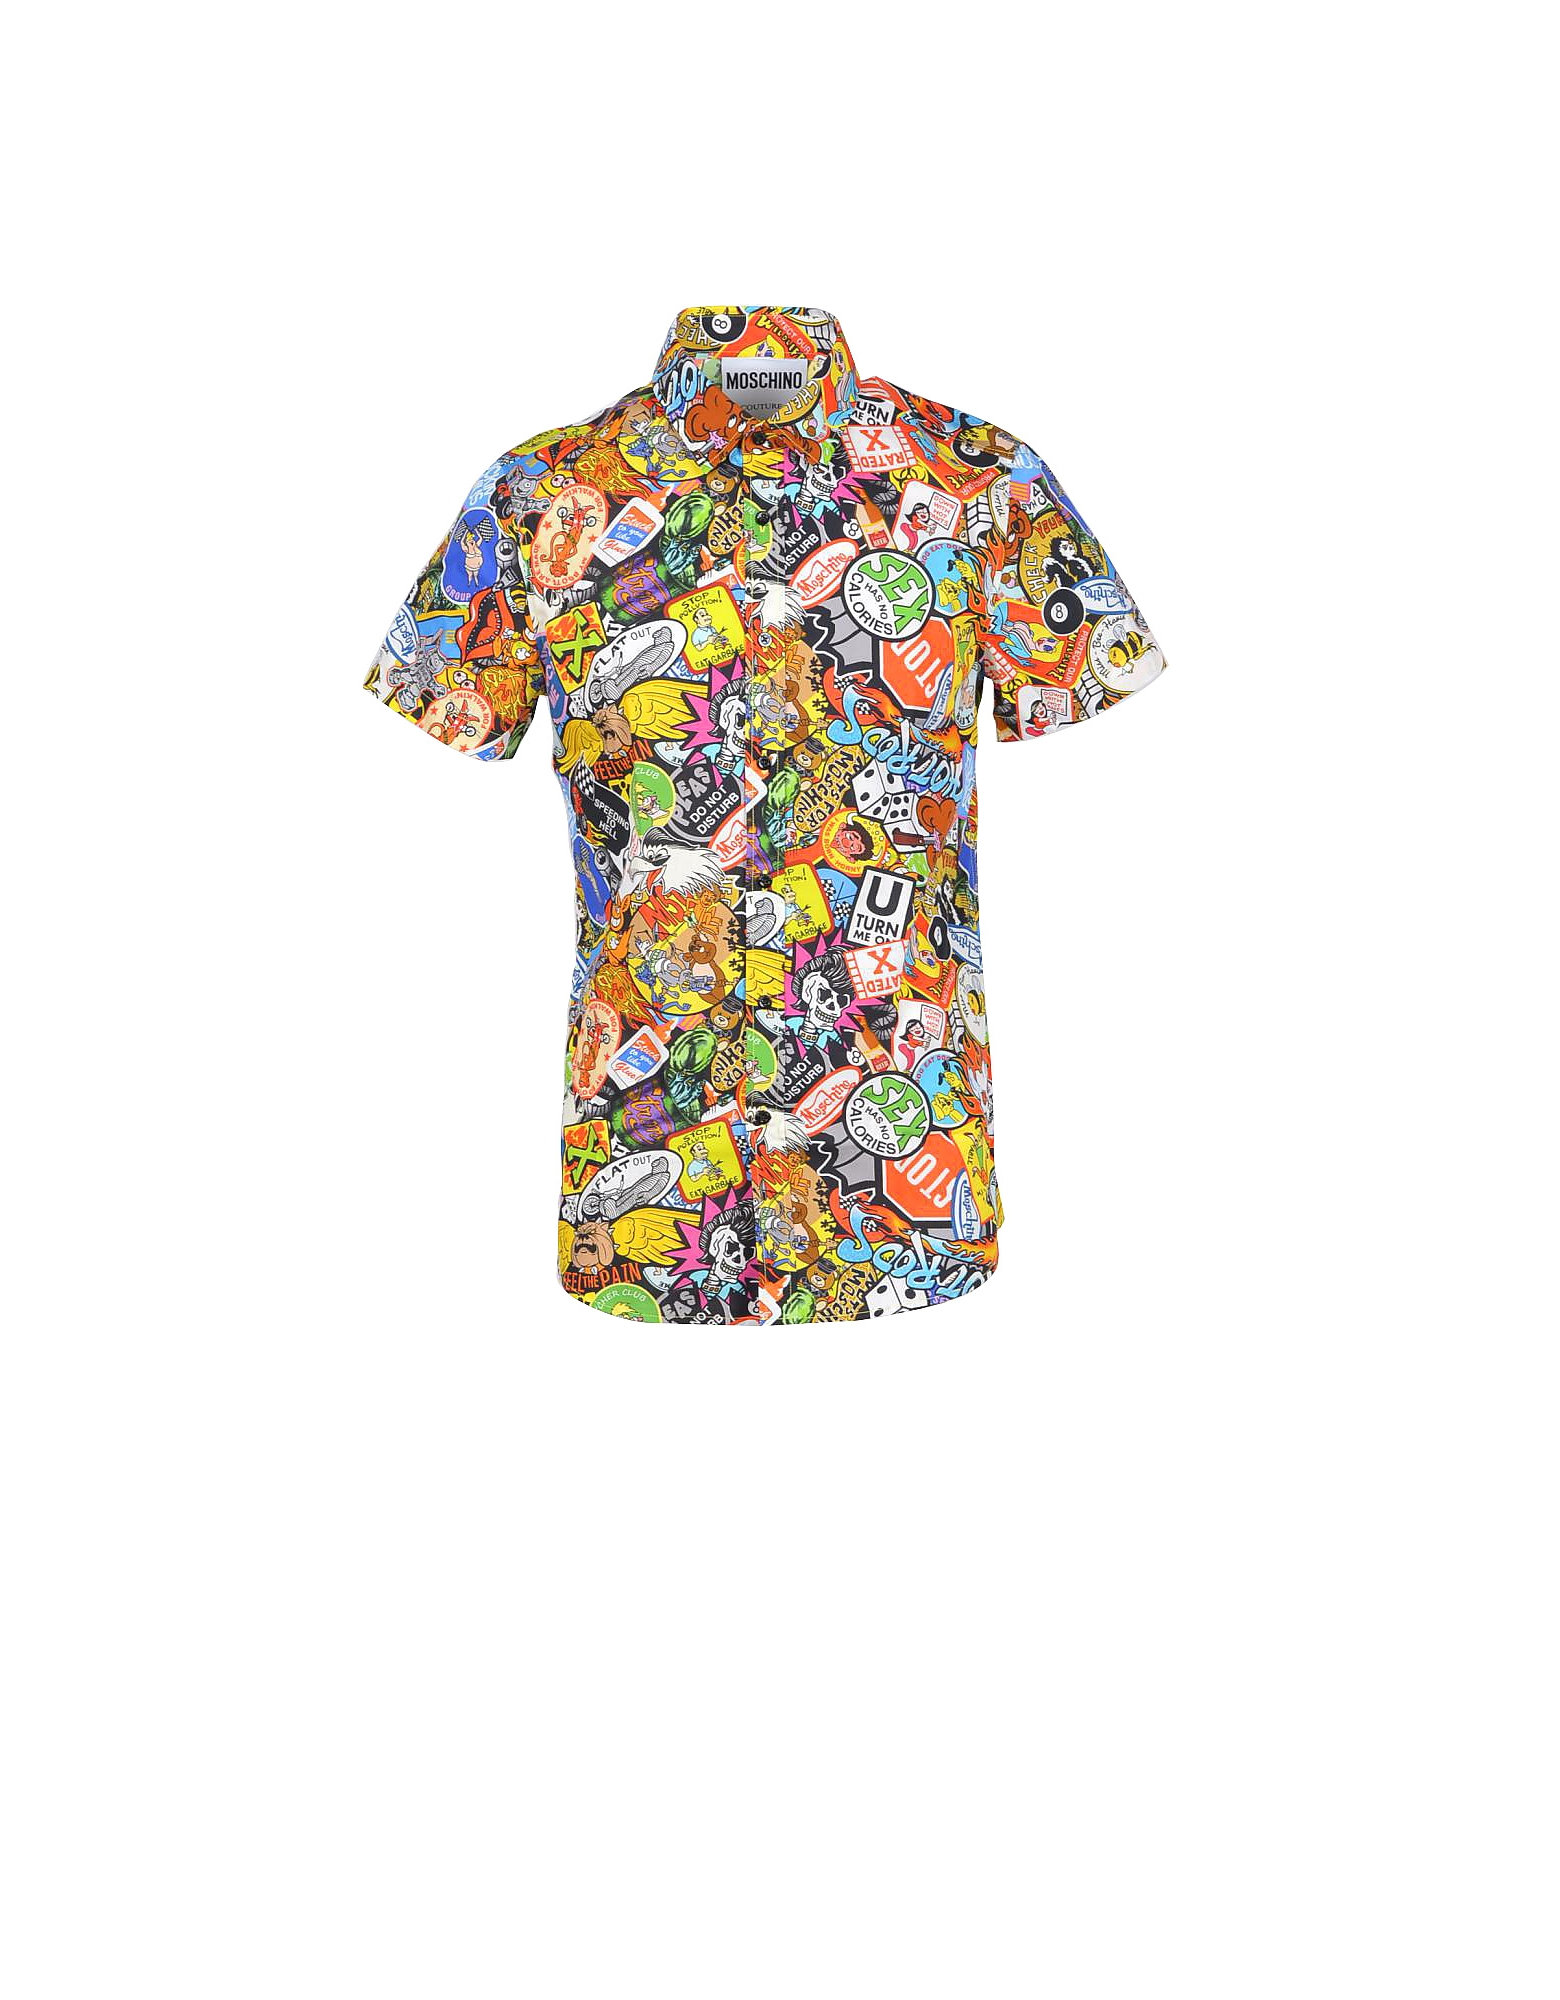 Moschino Designer Shirts, Allover Printed Cotton Short Sleeve Men's Shirt